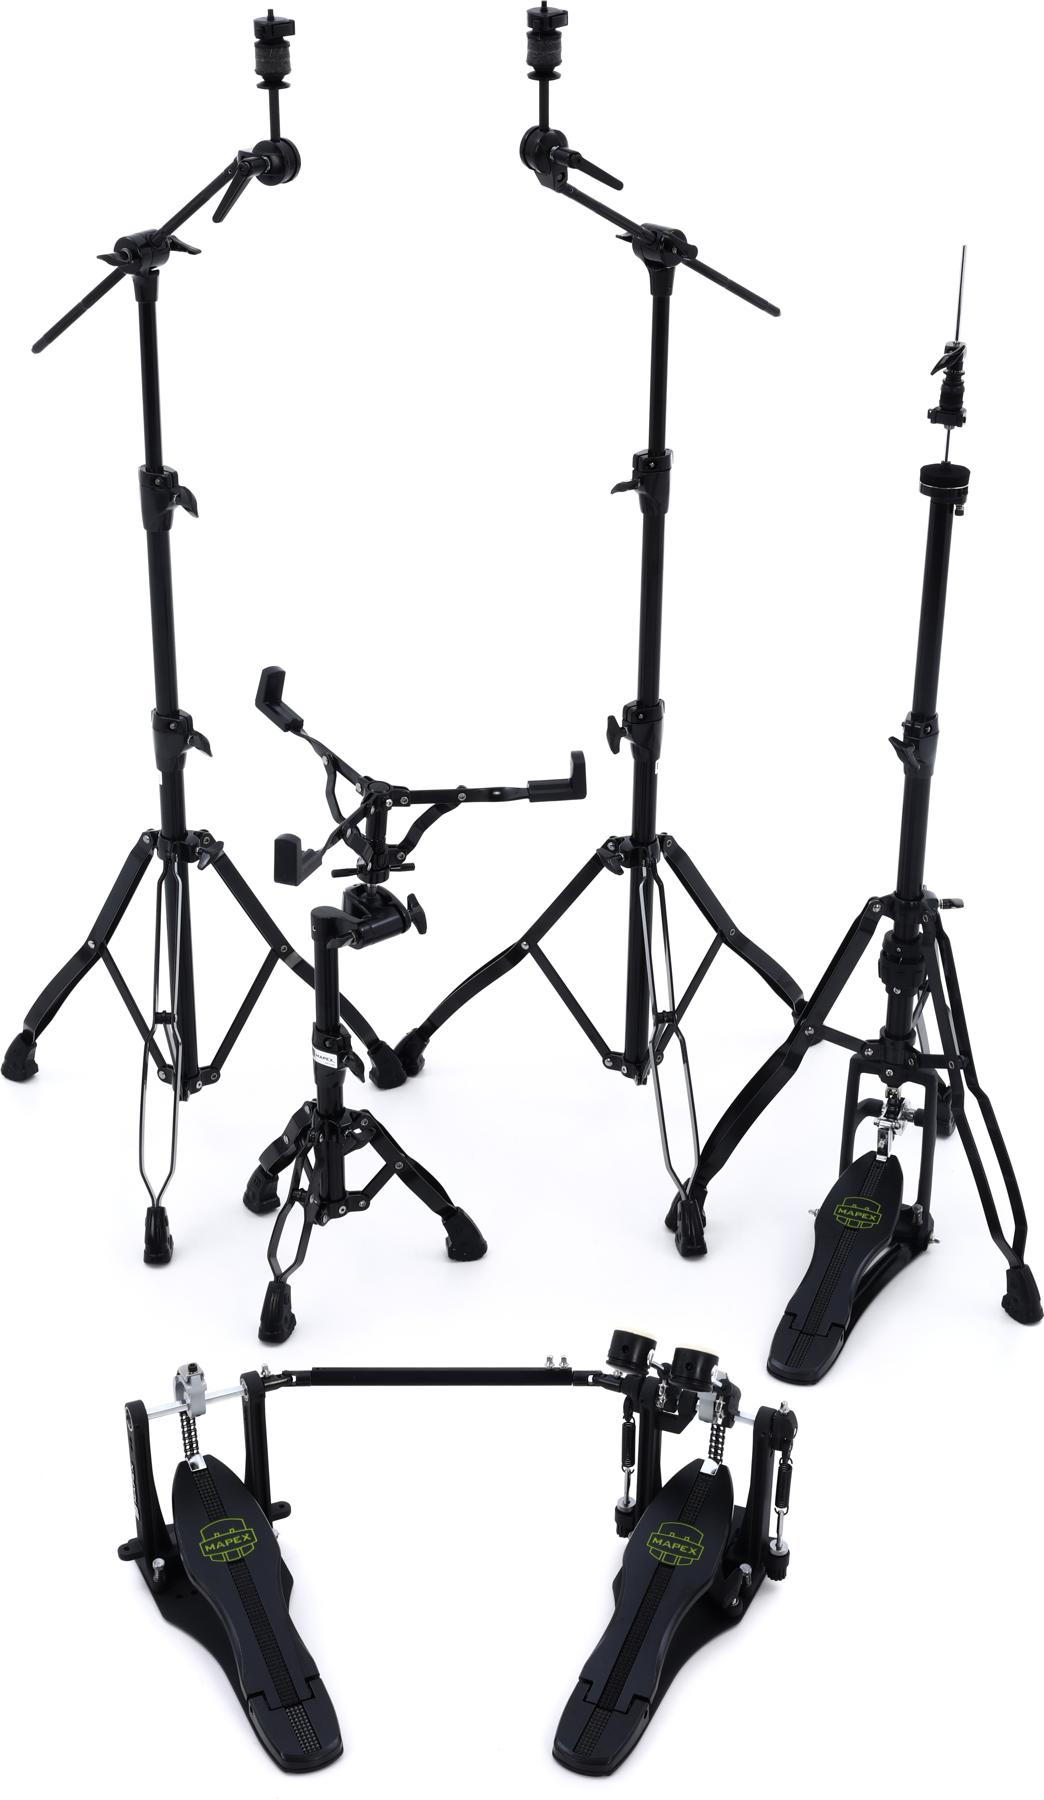 3. Mapex Armory 5-piece Hardware Pack (with Double Pedal)